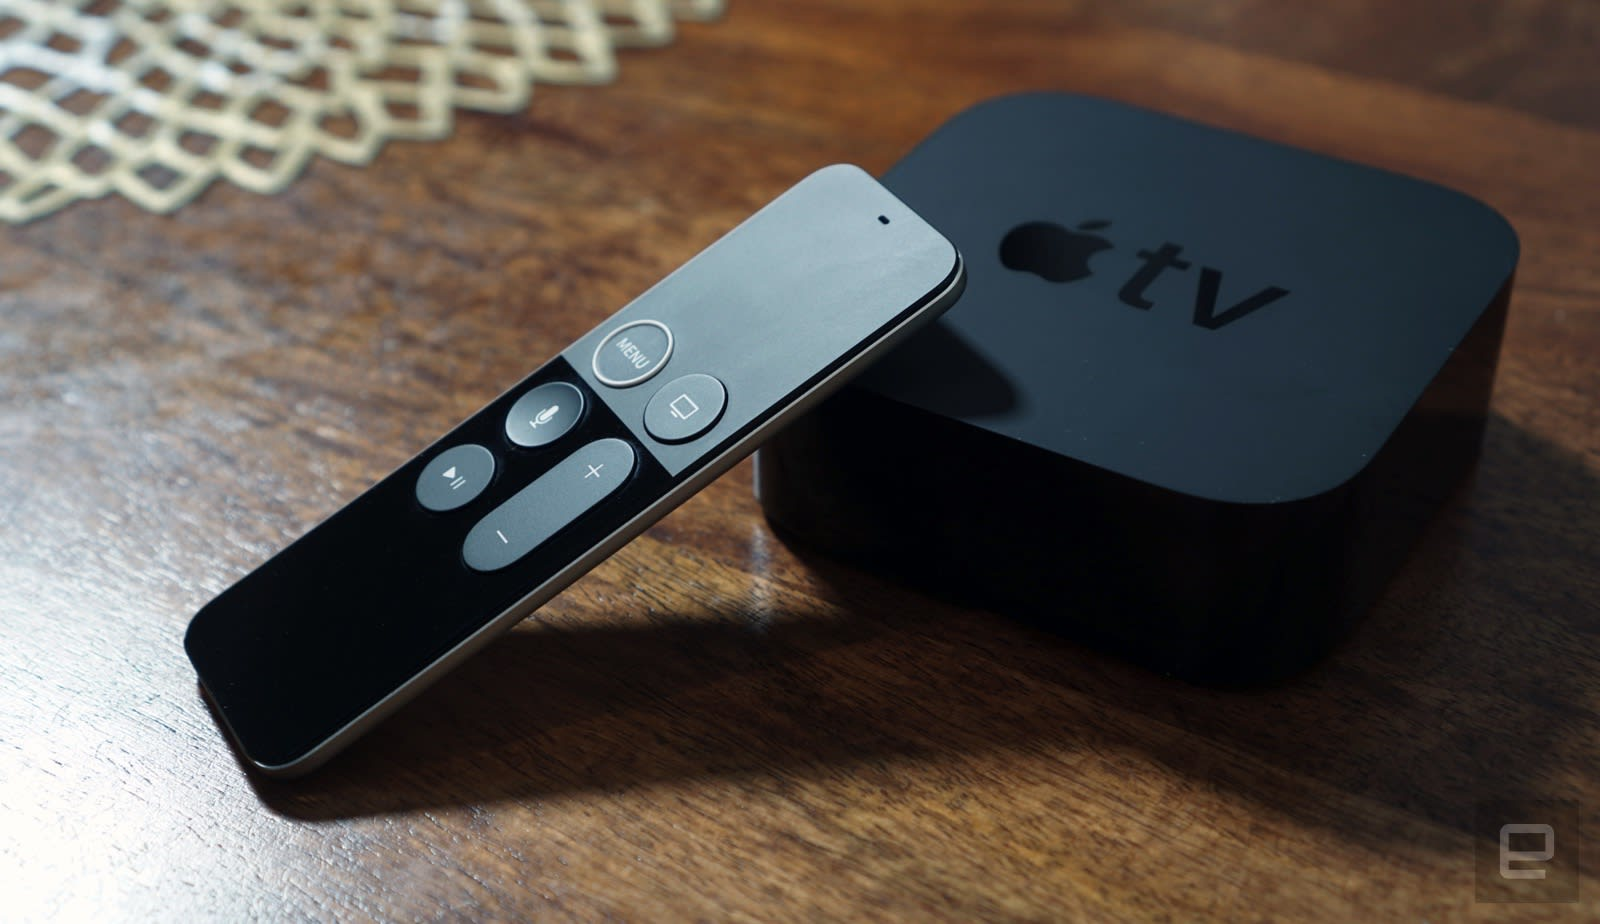 Apple TV 4K review: Almost perfect | Engadget